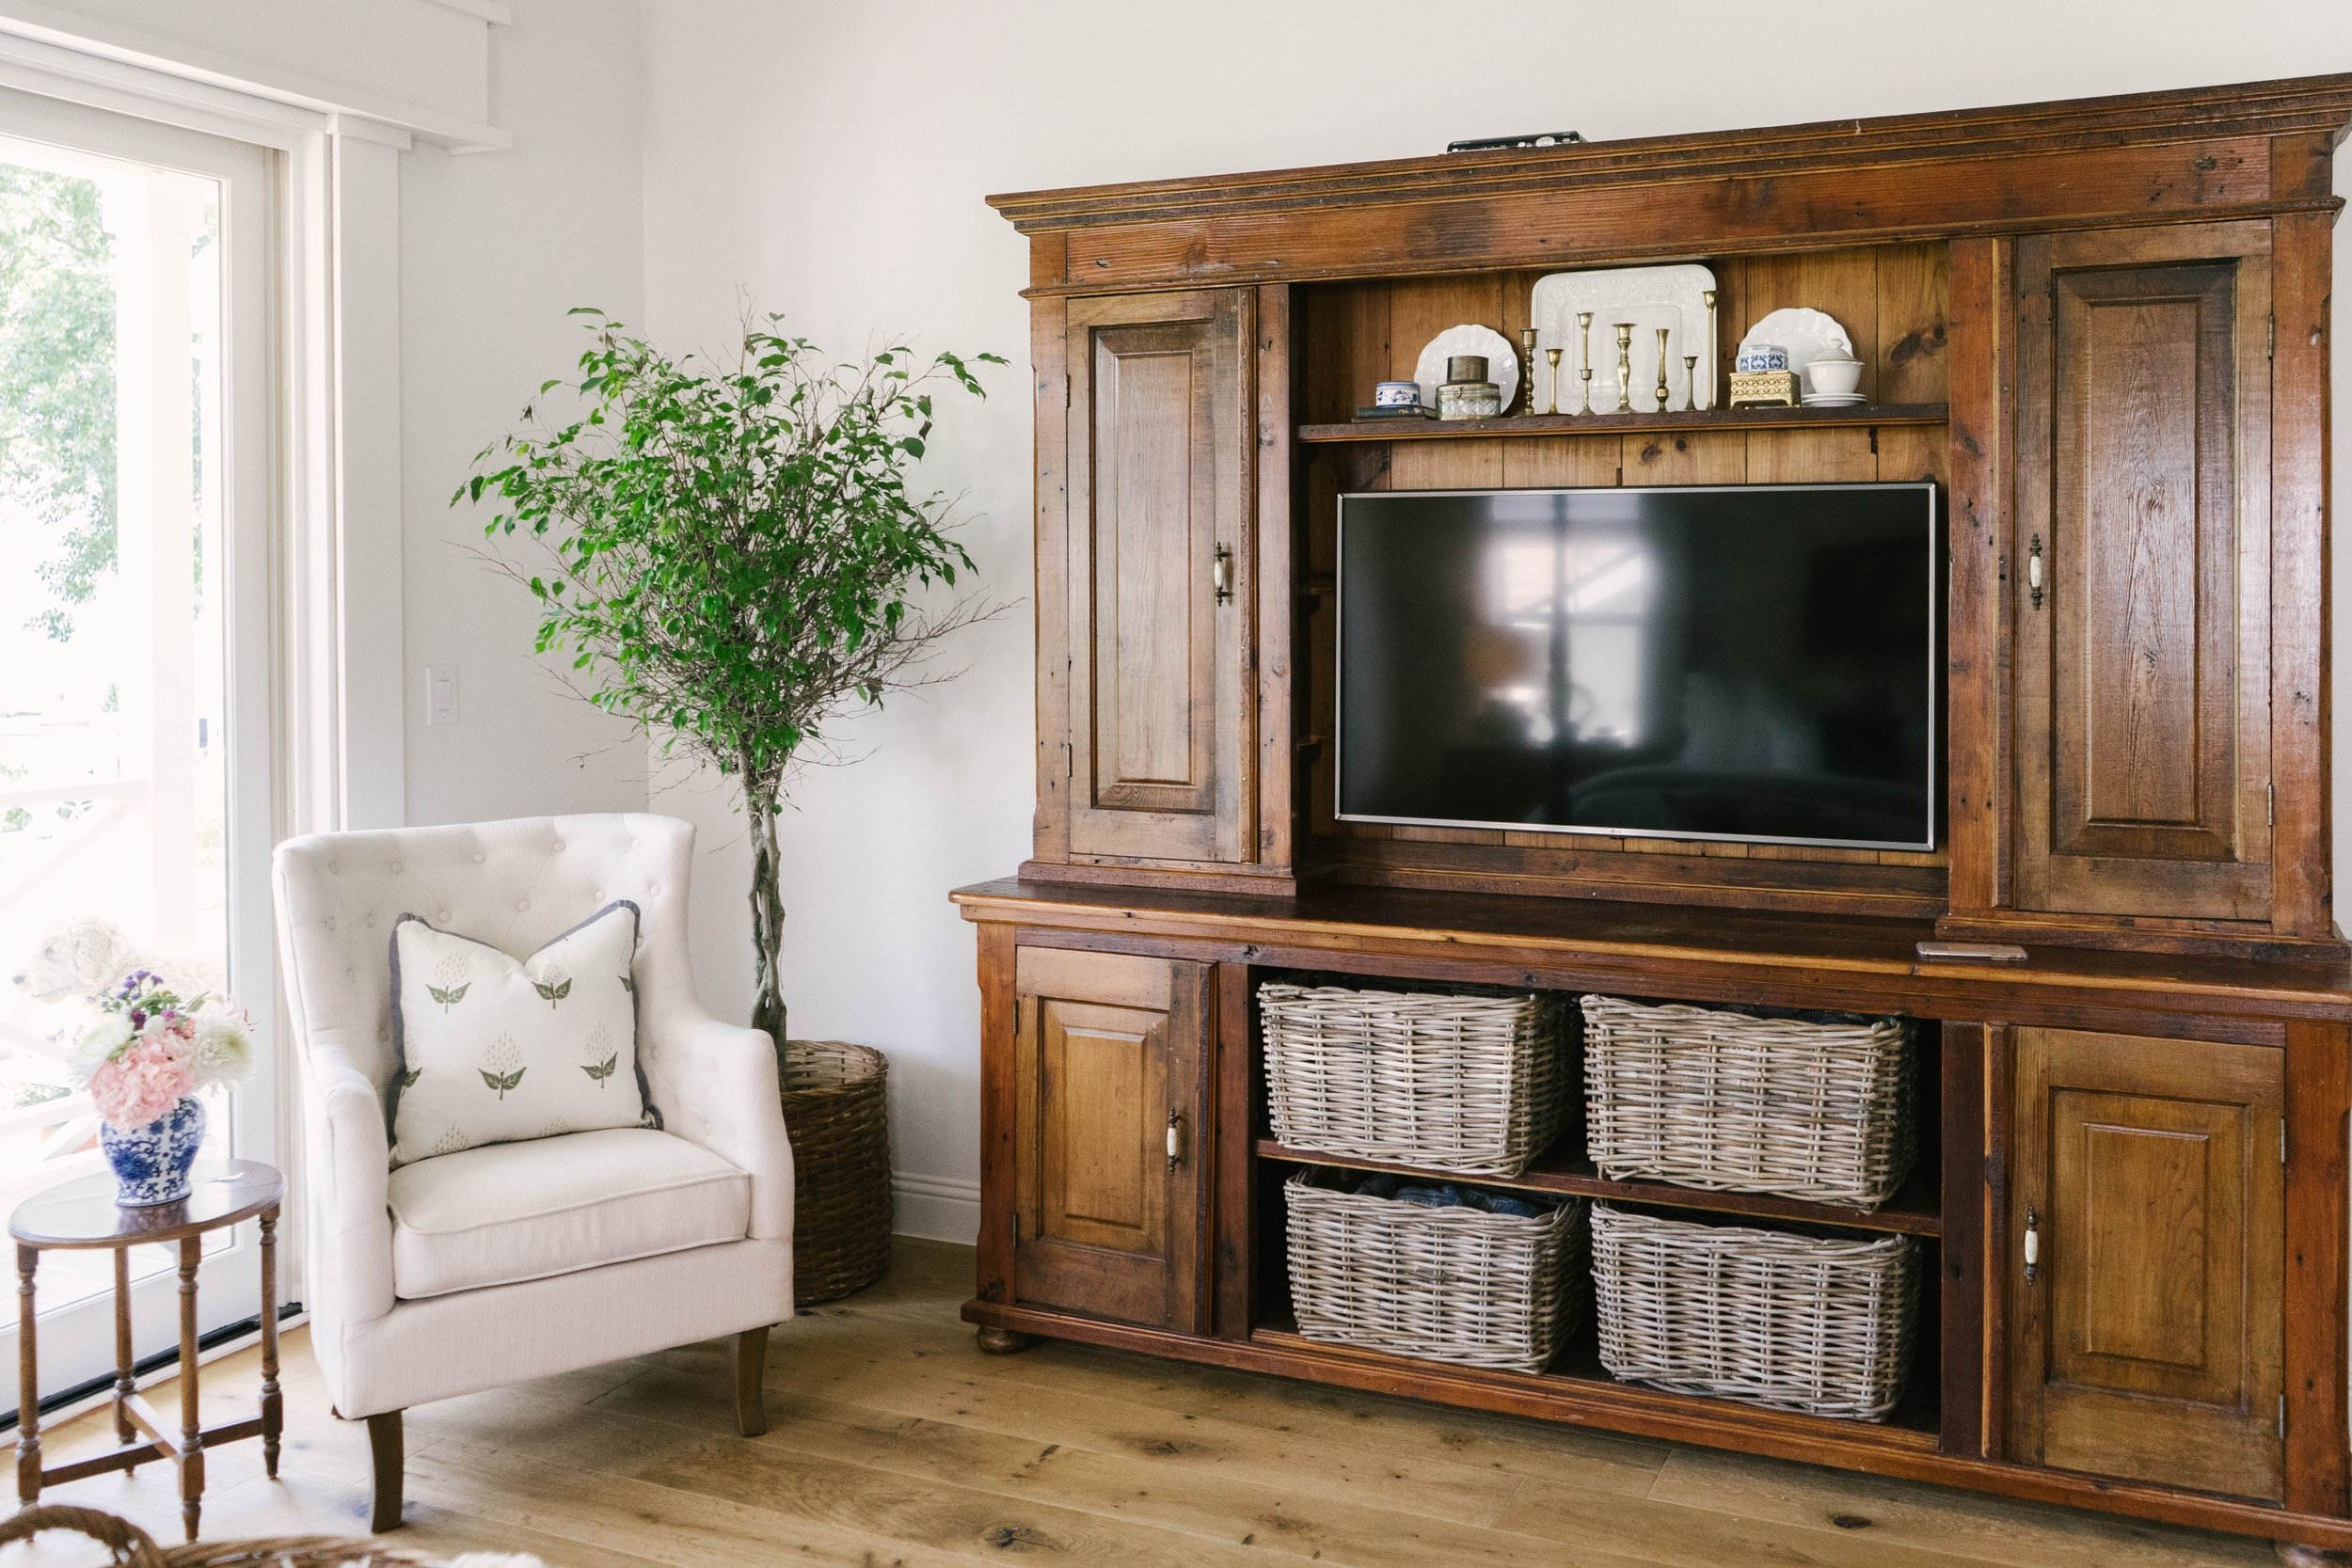 Classic Farmhouse Home Tour - Master Bedroom - Vintage Hutch Turned Entertainment Center